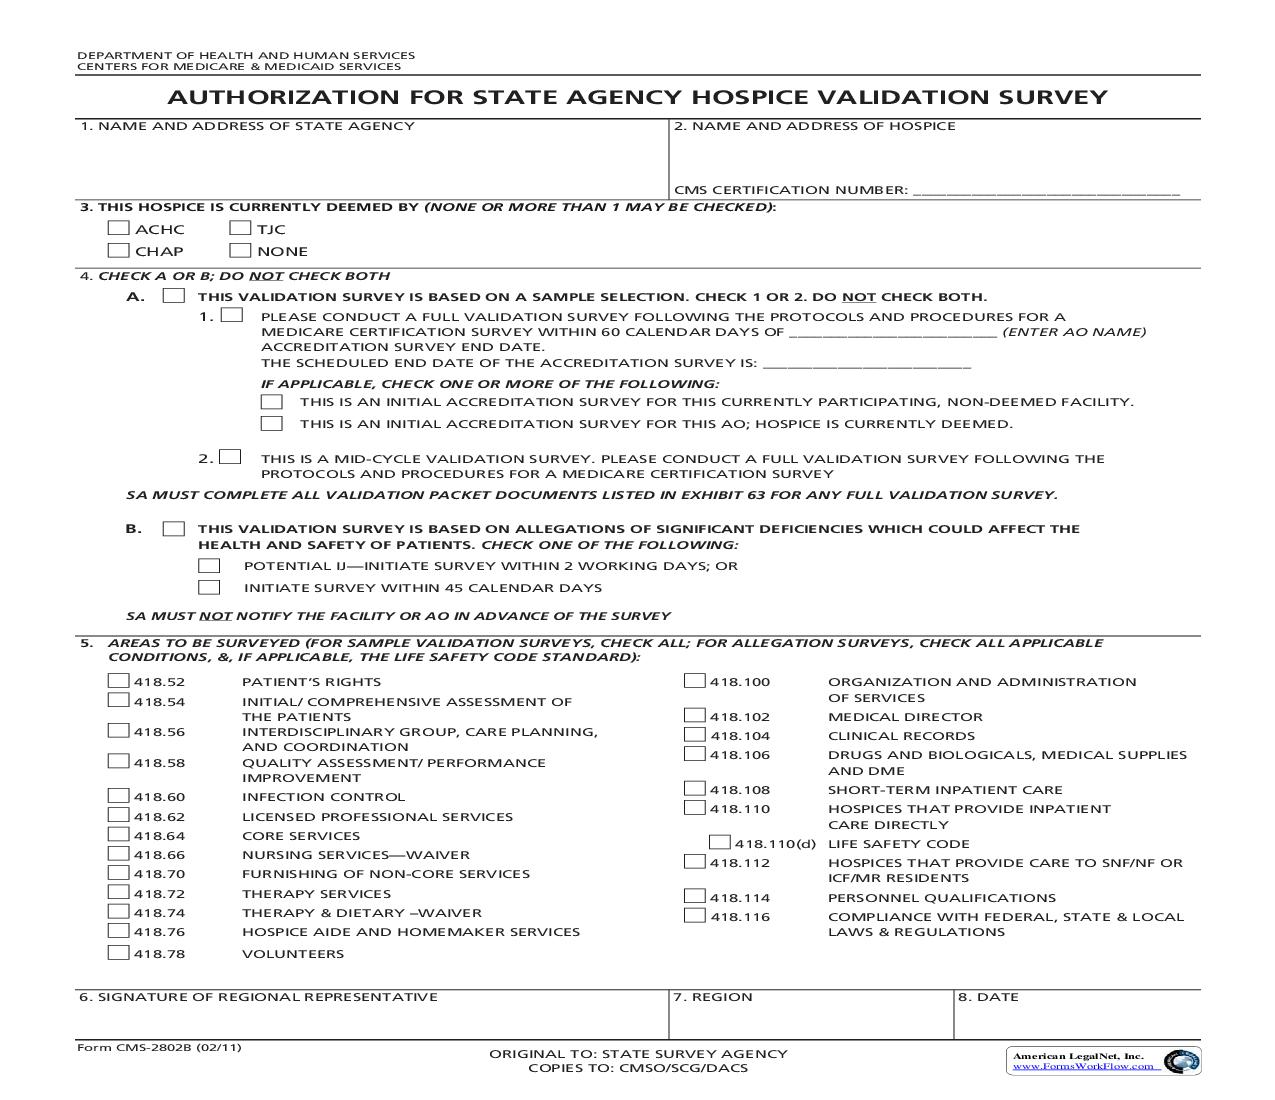 Authorization For State Agency Hospice Validation Survey {CMS-2802B} | Pdf Fpdf Doc Docx | Official Federal Forms